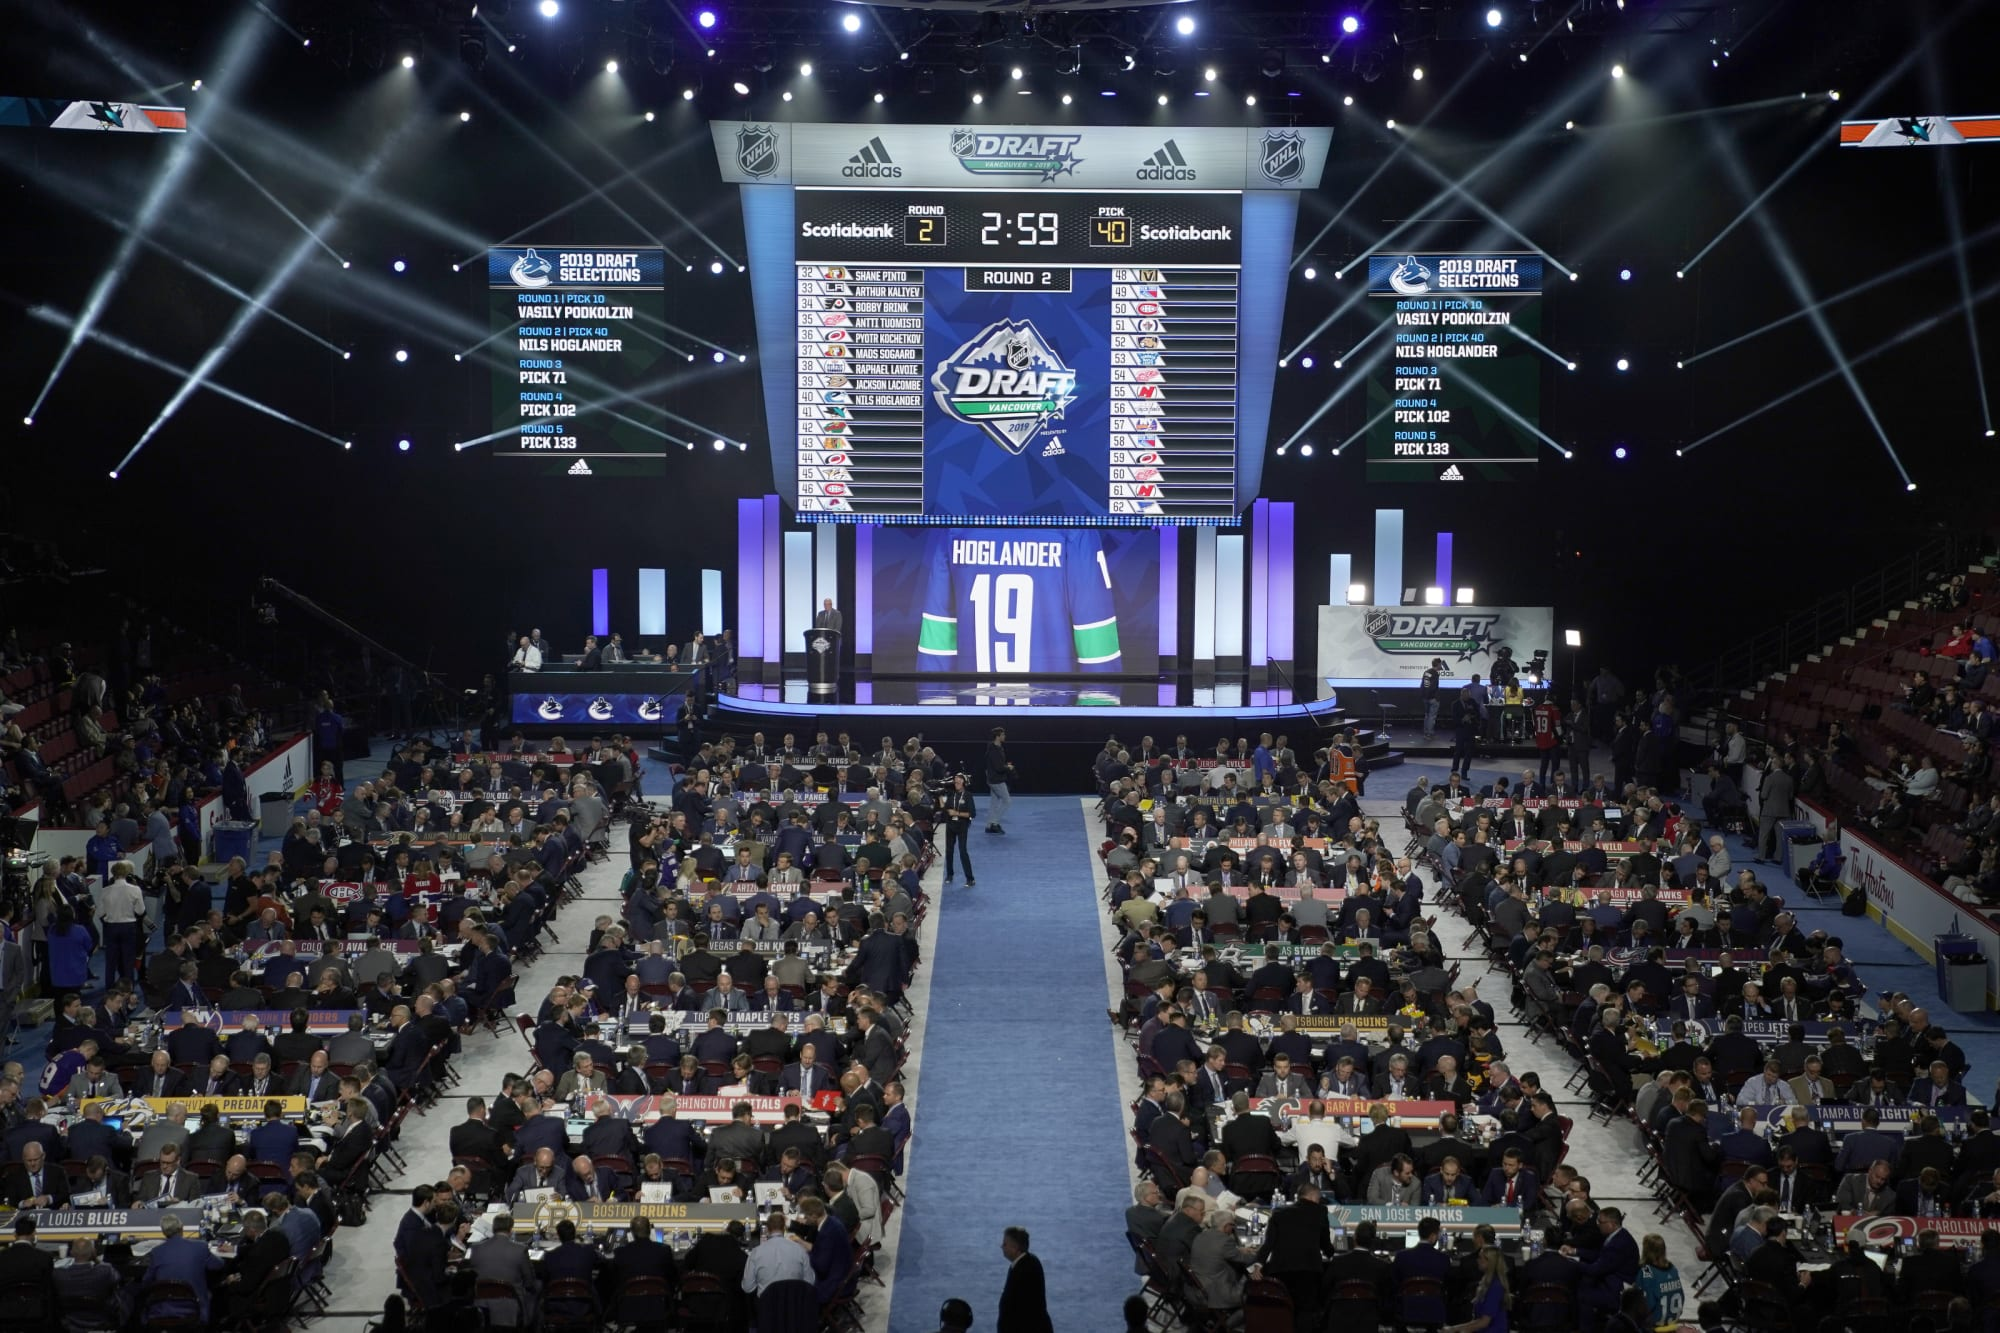 The draft keeps getting better and better for the Rangers